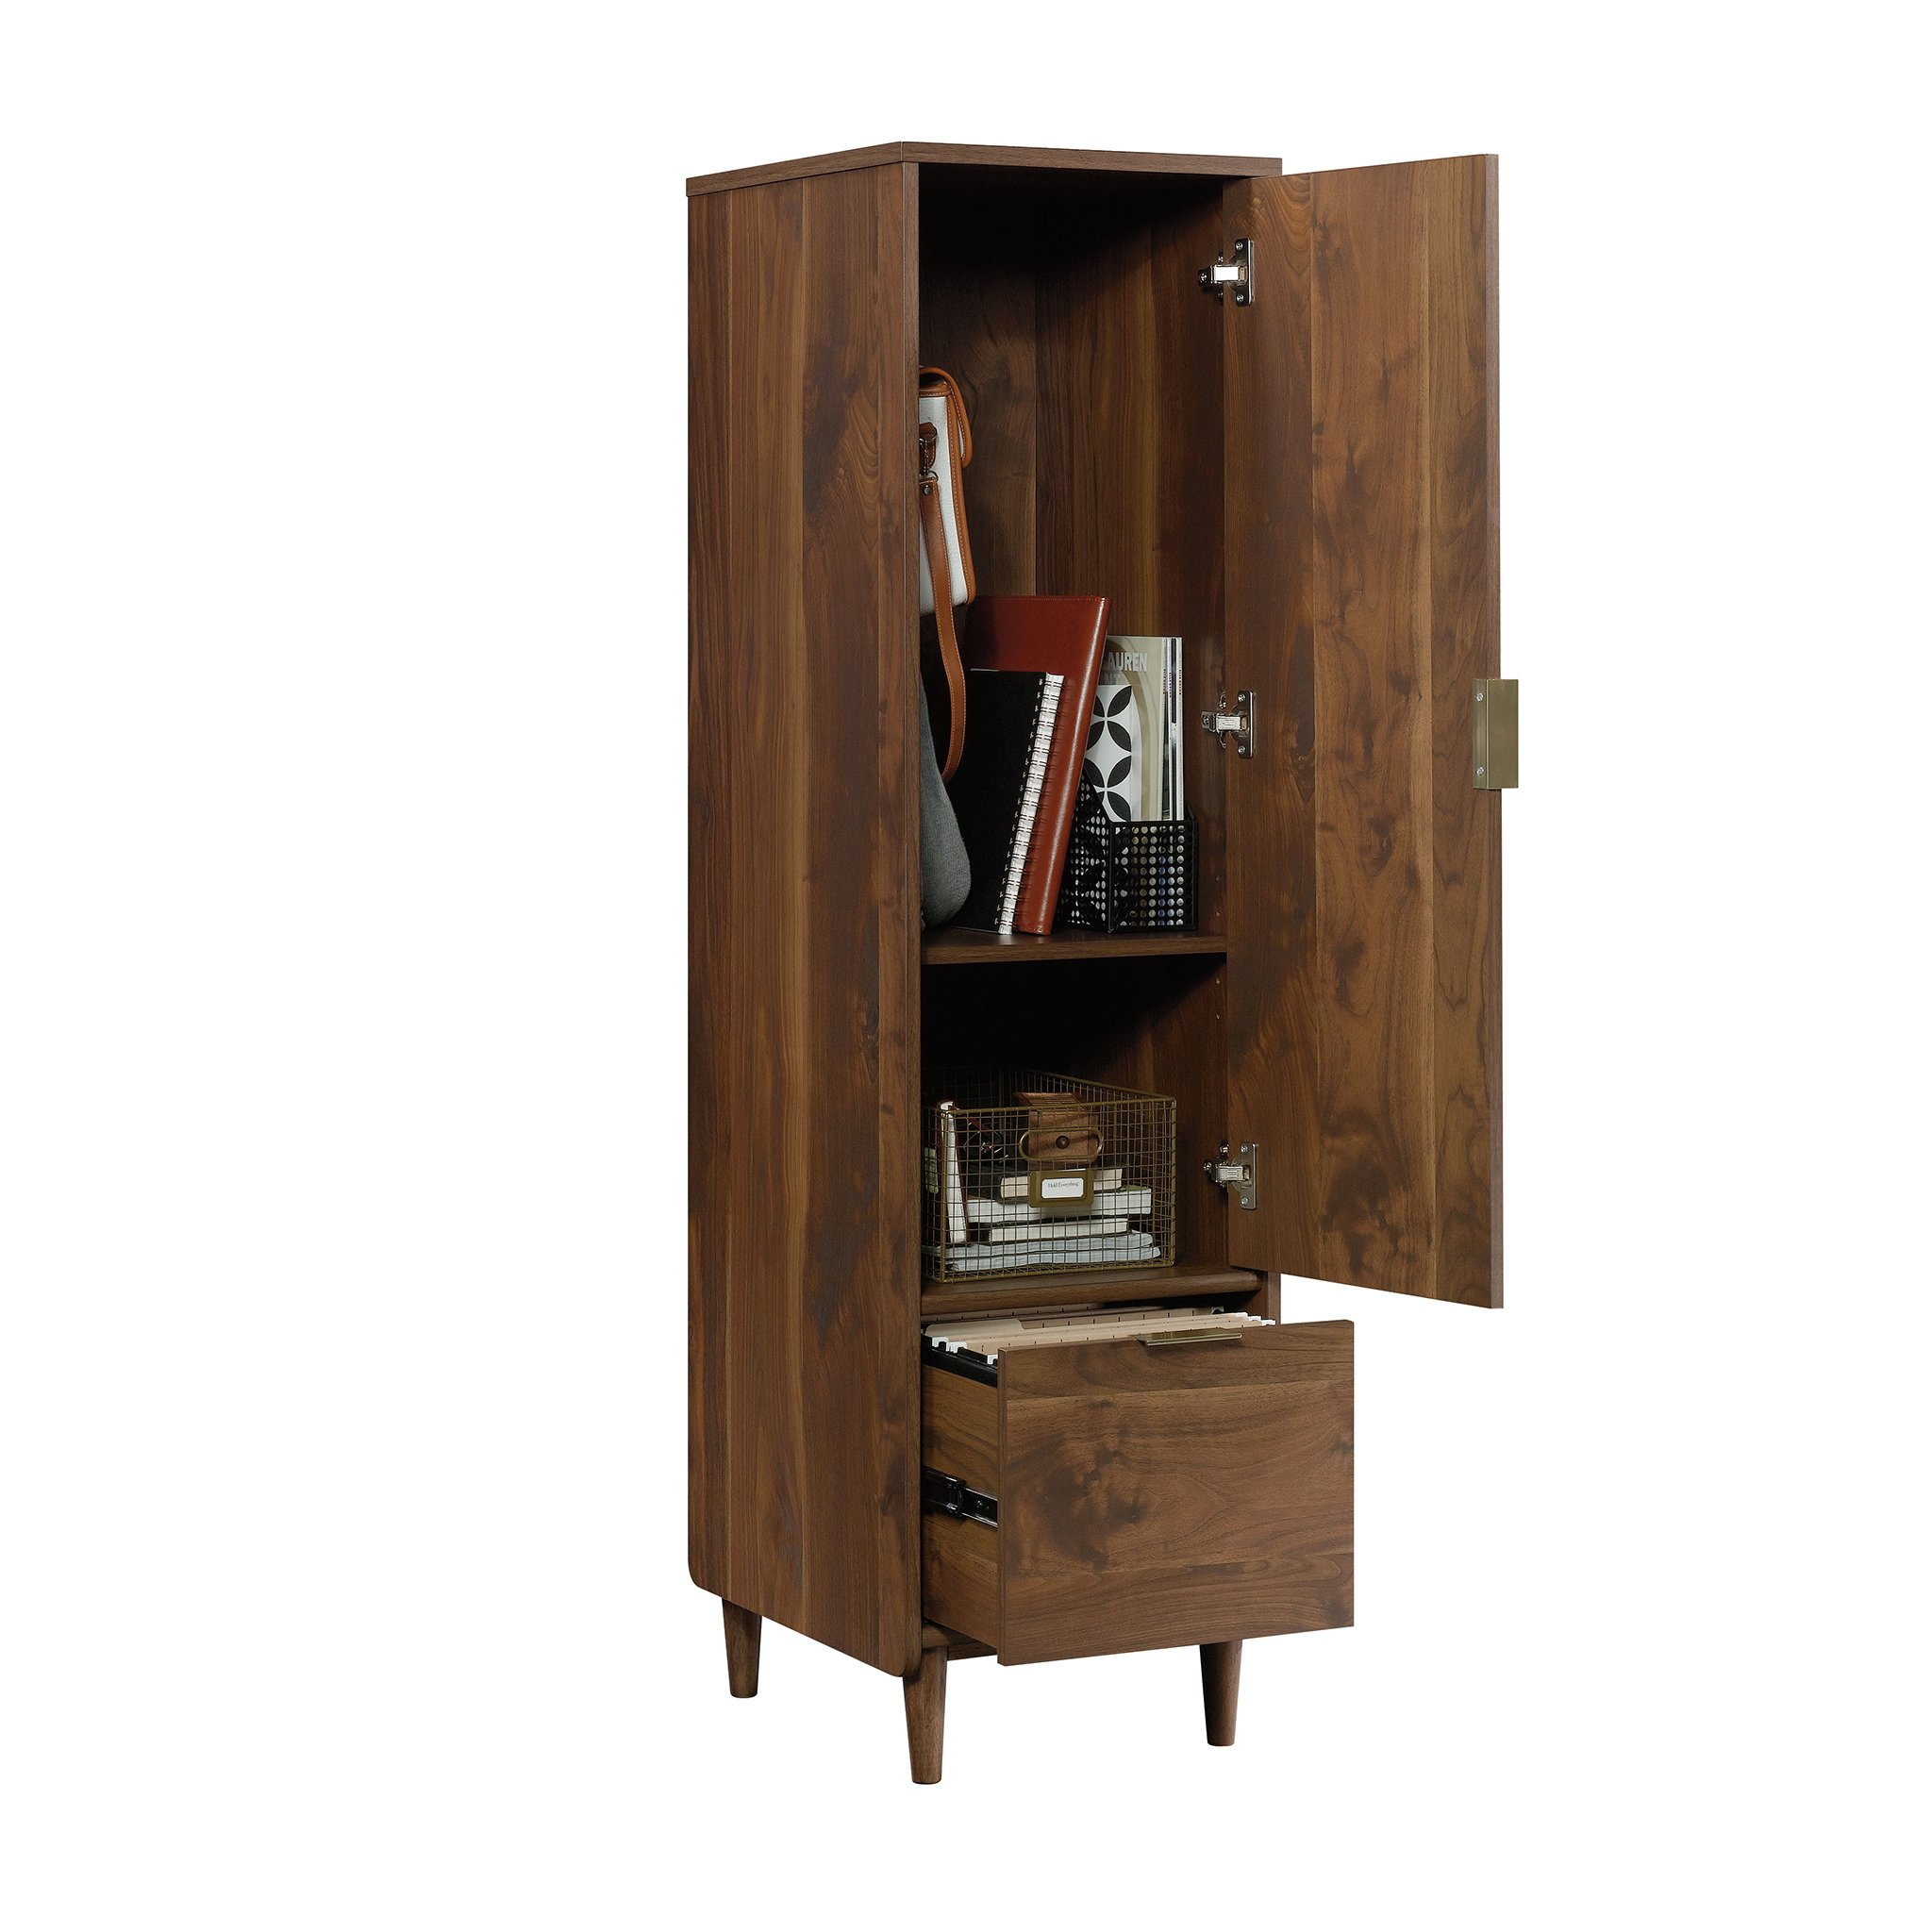 Sauder 421318 Clifford Place Storage Cabinet with File, L: 15.51'' x W: 18.50'' x H: 58.27'', Grand Walnut Finish by Sauder (Image #11)